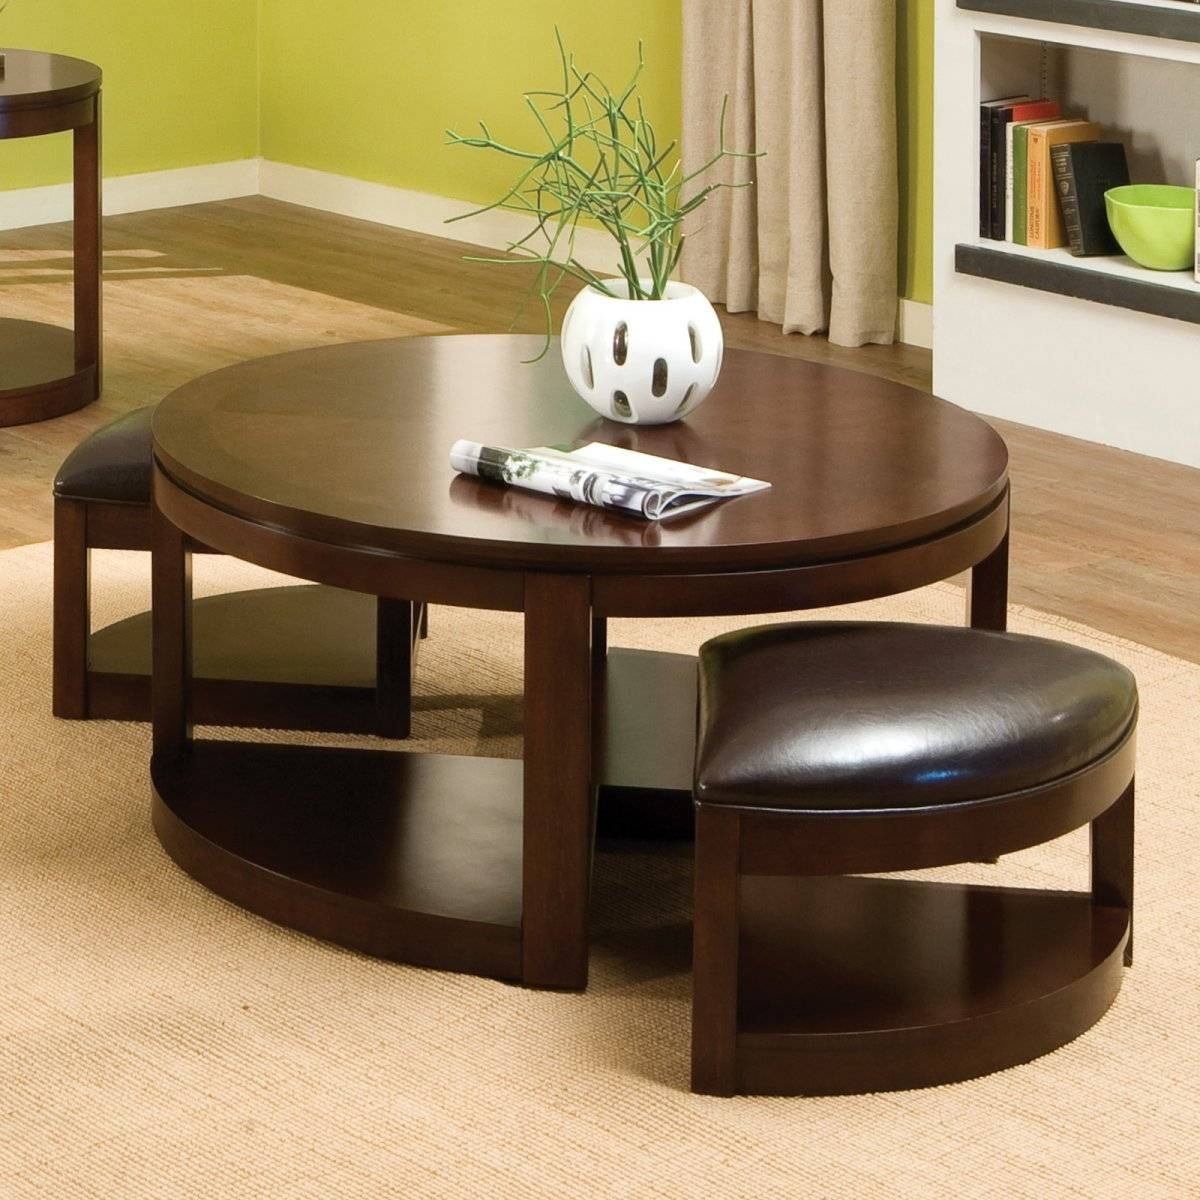 Mohena Wood And Leather Circular Coffee Table Birdsu0027 Tooled In Coffee Tables With Nesting Stools (View 15 of 30)